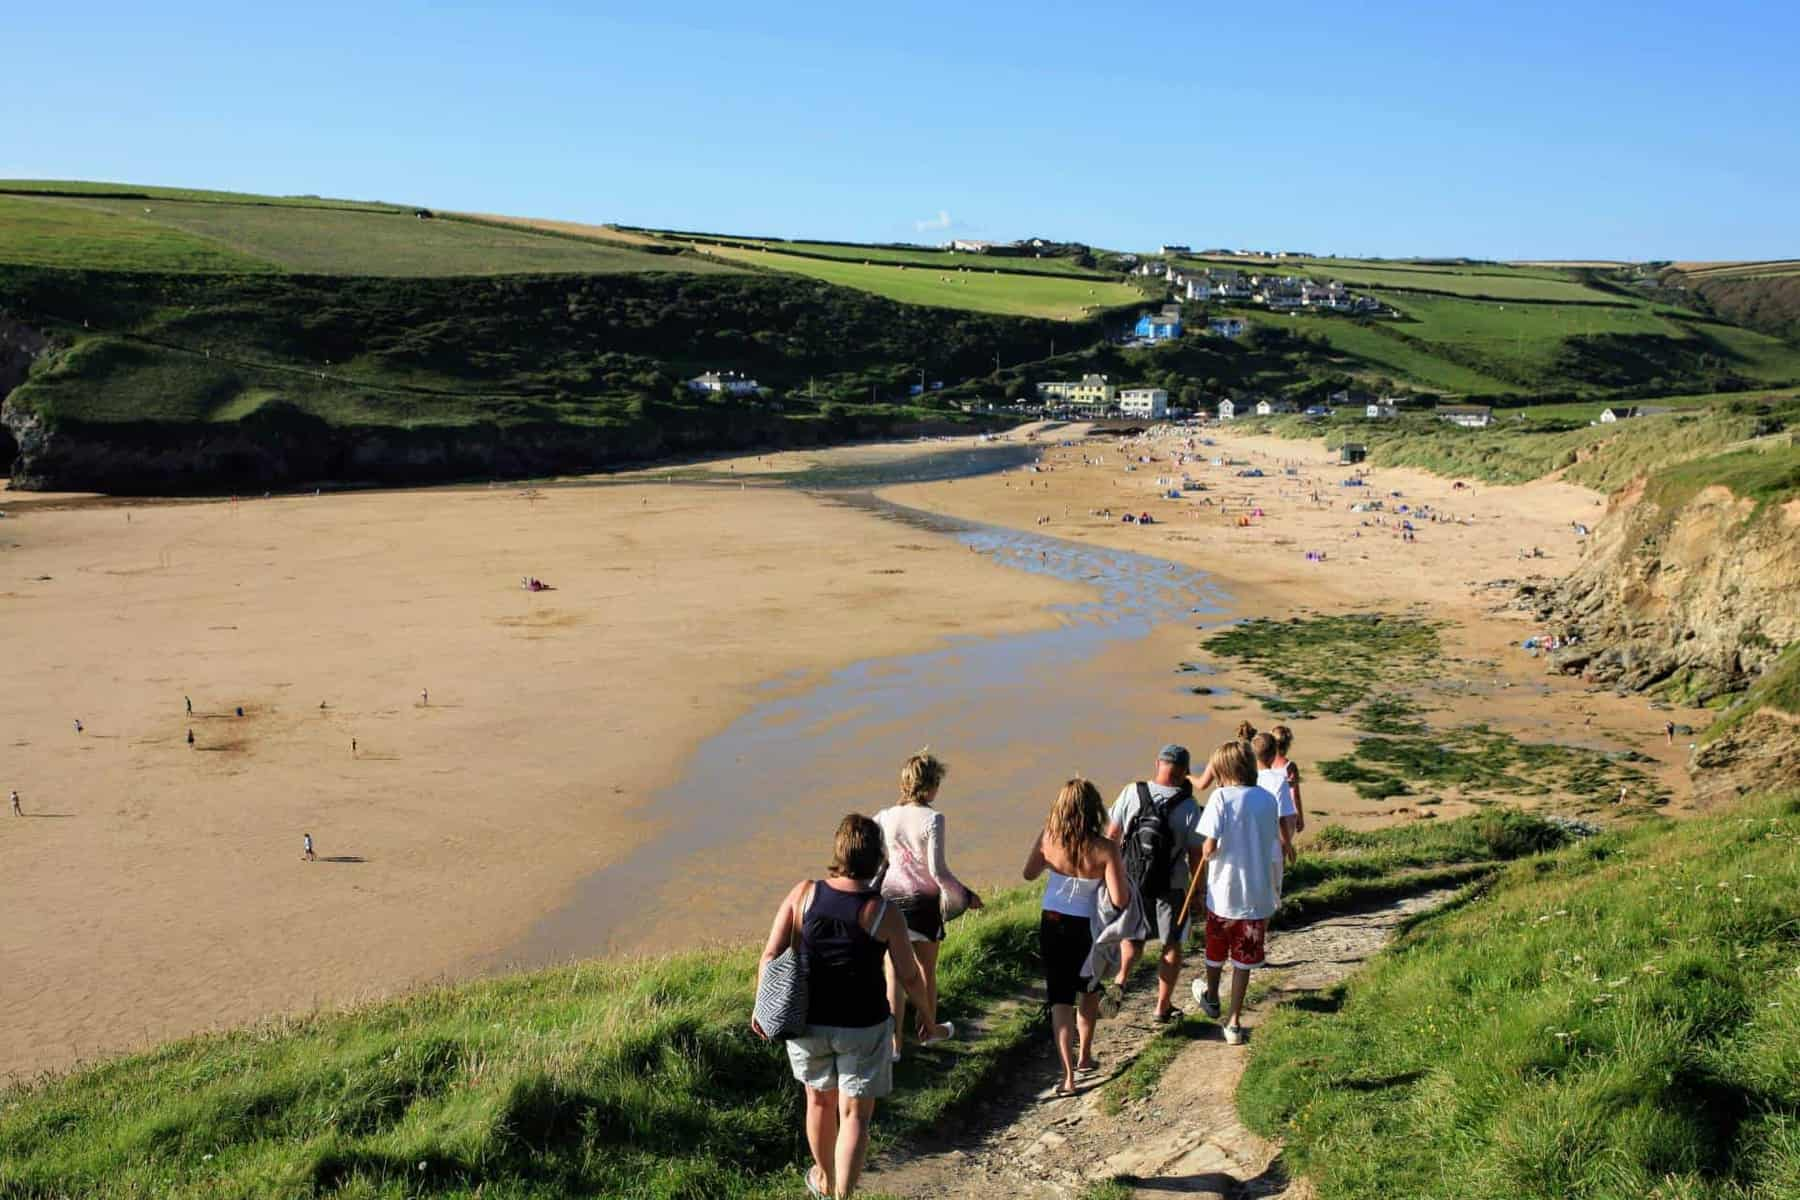 Holidaymakers at the beach in Cornwall